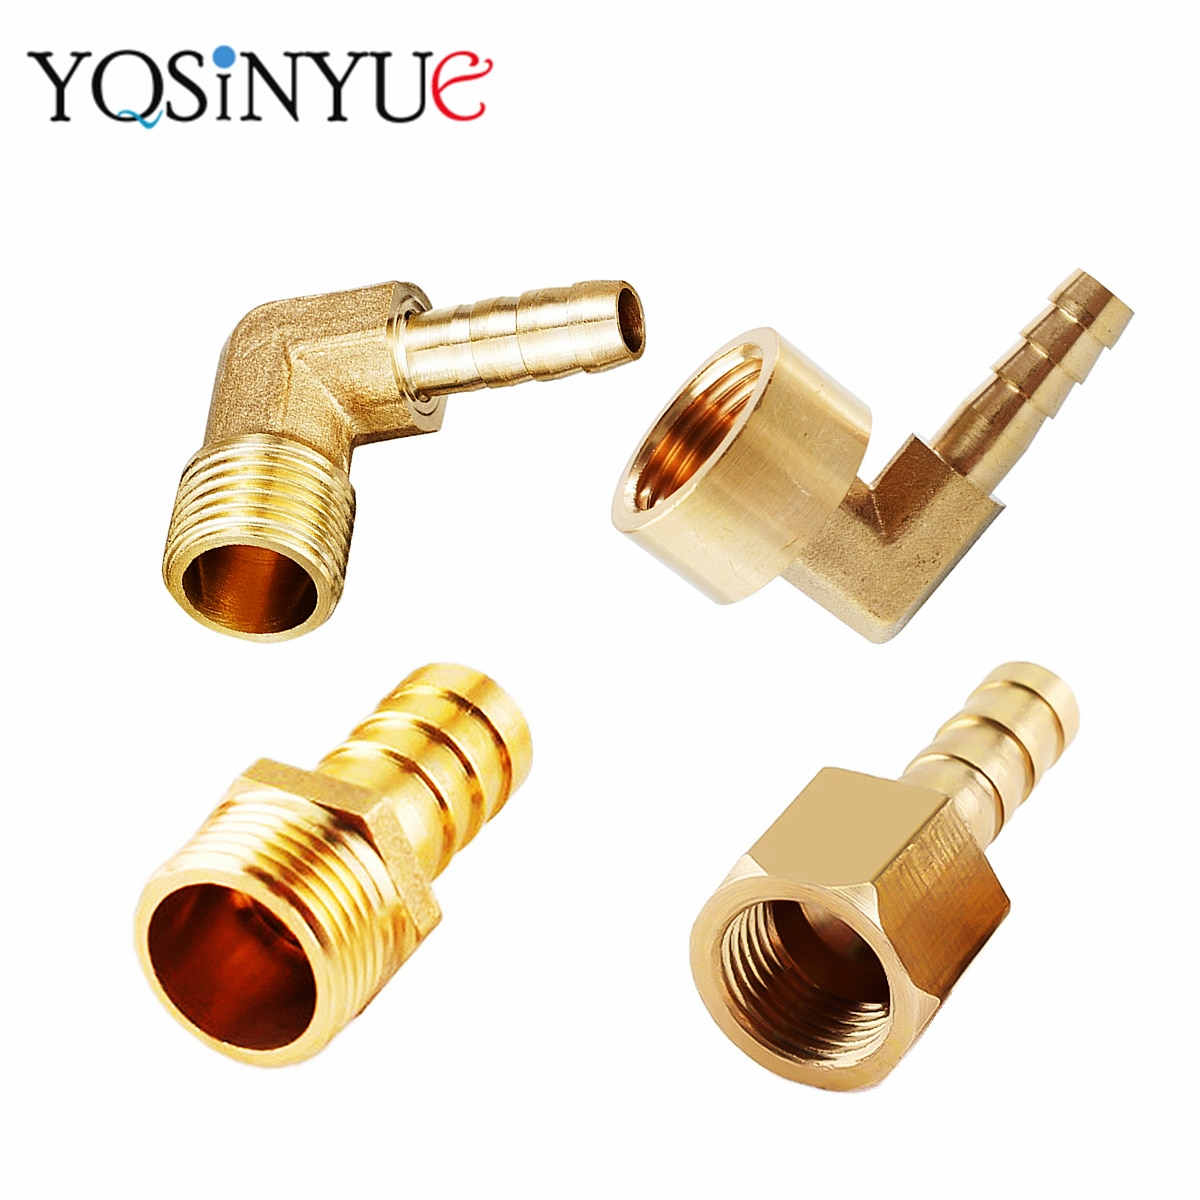 """6 8 10mm od hose barb x 1 8"""" 1 4"""" 3 8"""" 1 2"""" 3 4"""" 1"""" bsp male thread stainless steel barbed pipe fitting connector coupler ada Brass Hose Fitting 6/8/10/12/14/16/19/25mm Barb Tail 1/8 1/4 3/8 1/2 3/4 1 BSP Male Female Thread Copper Connector Coupler"""